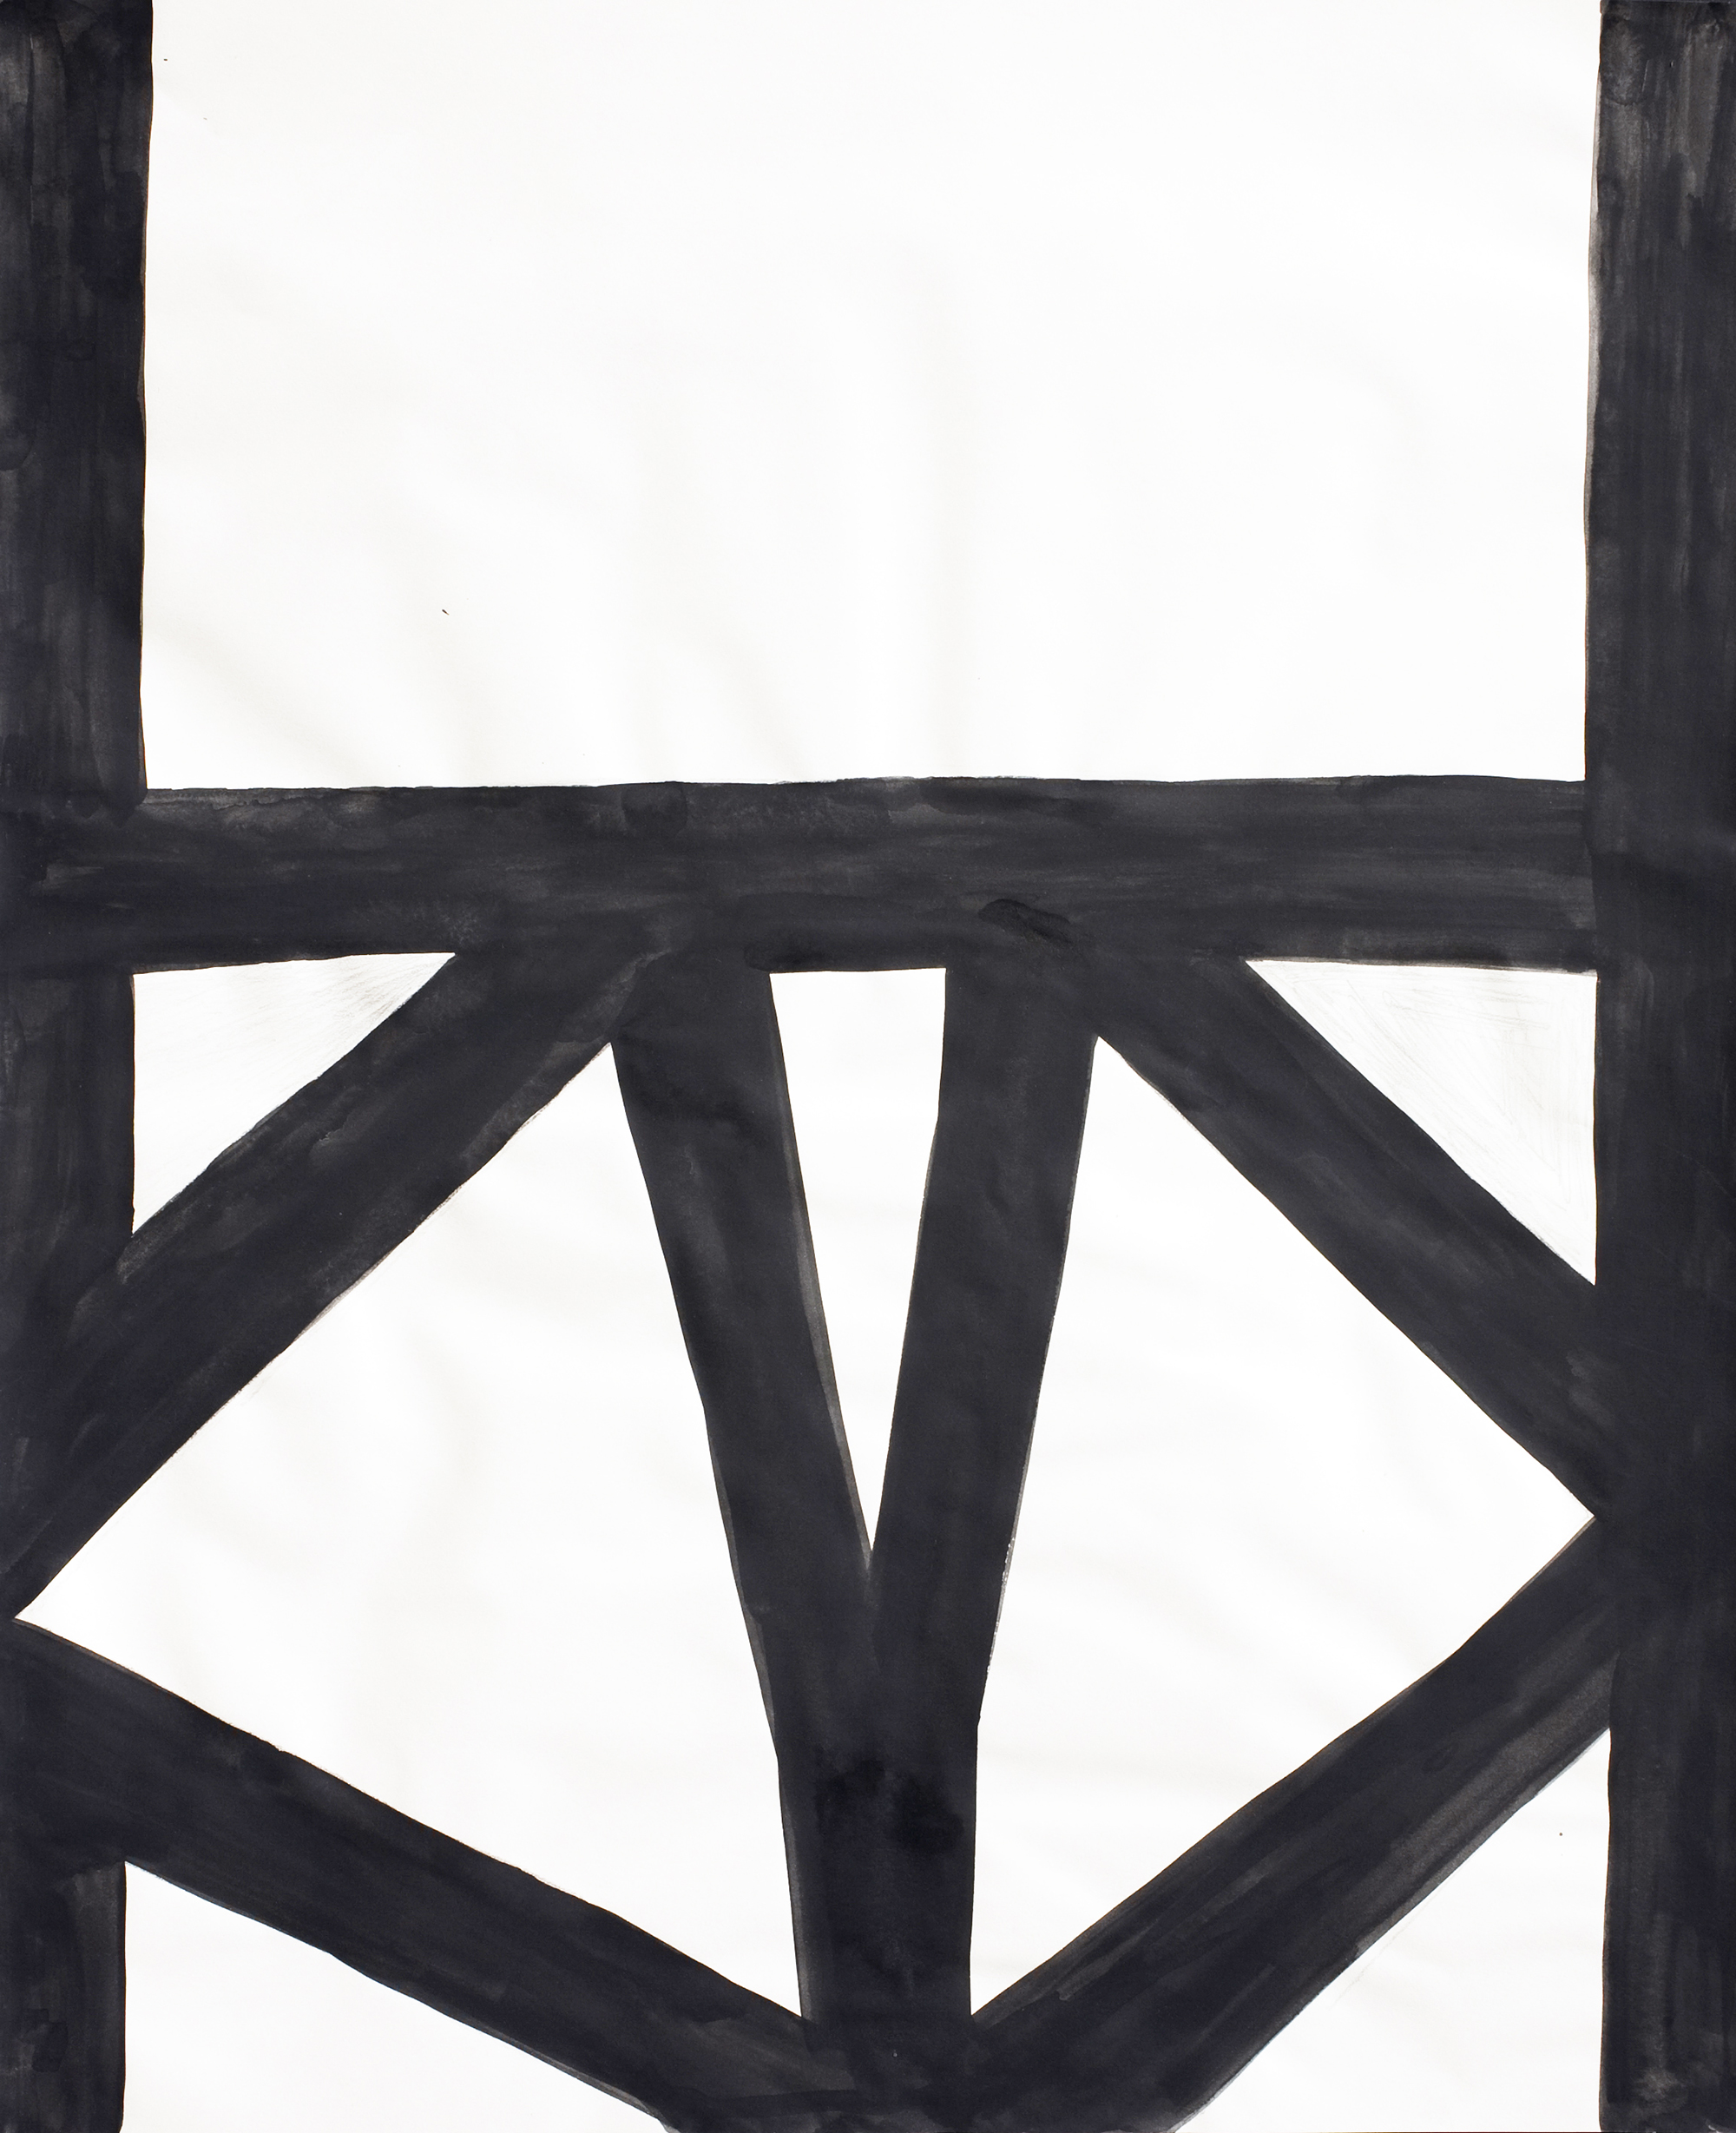 Untitled, 2008, gouache on paper